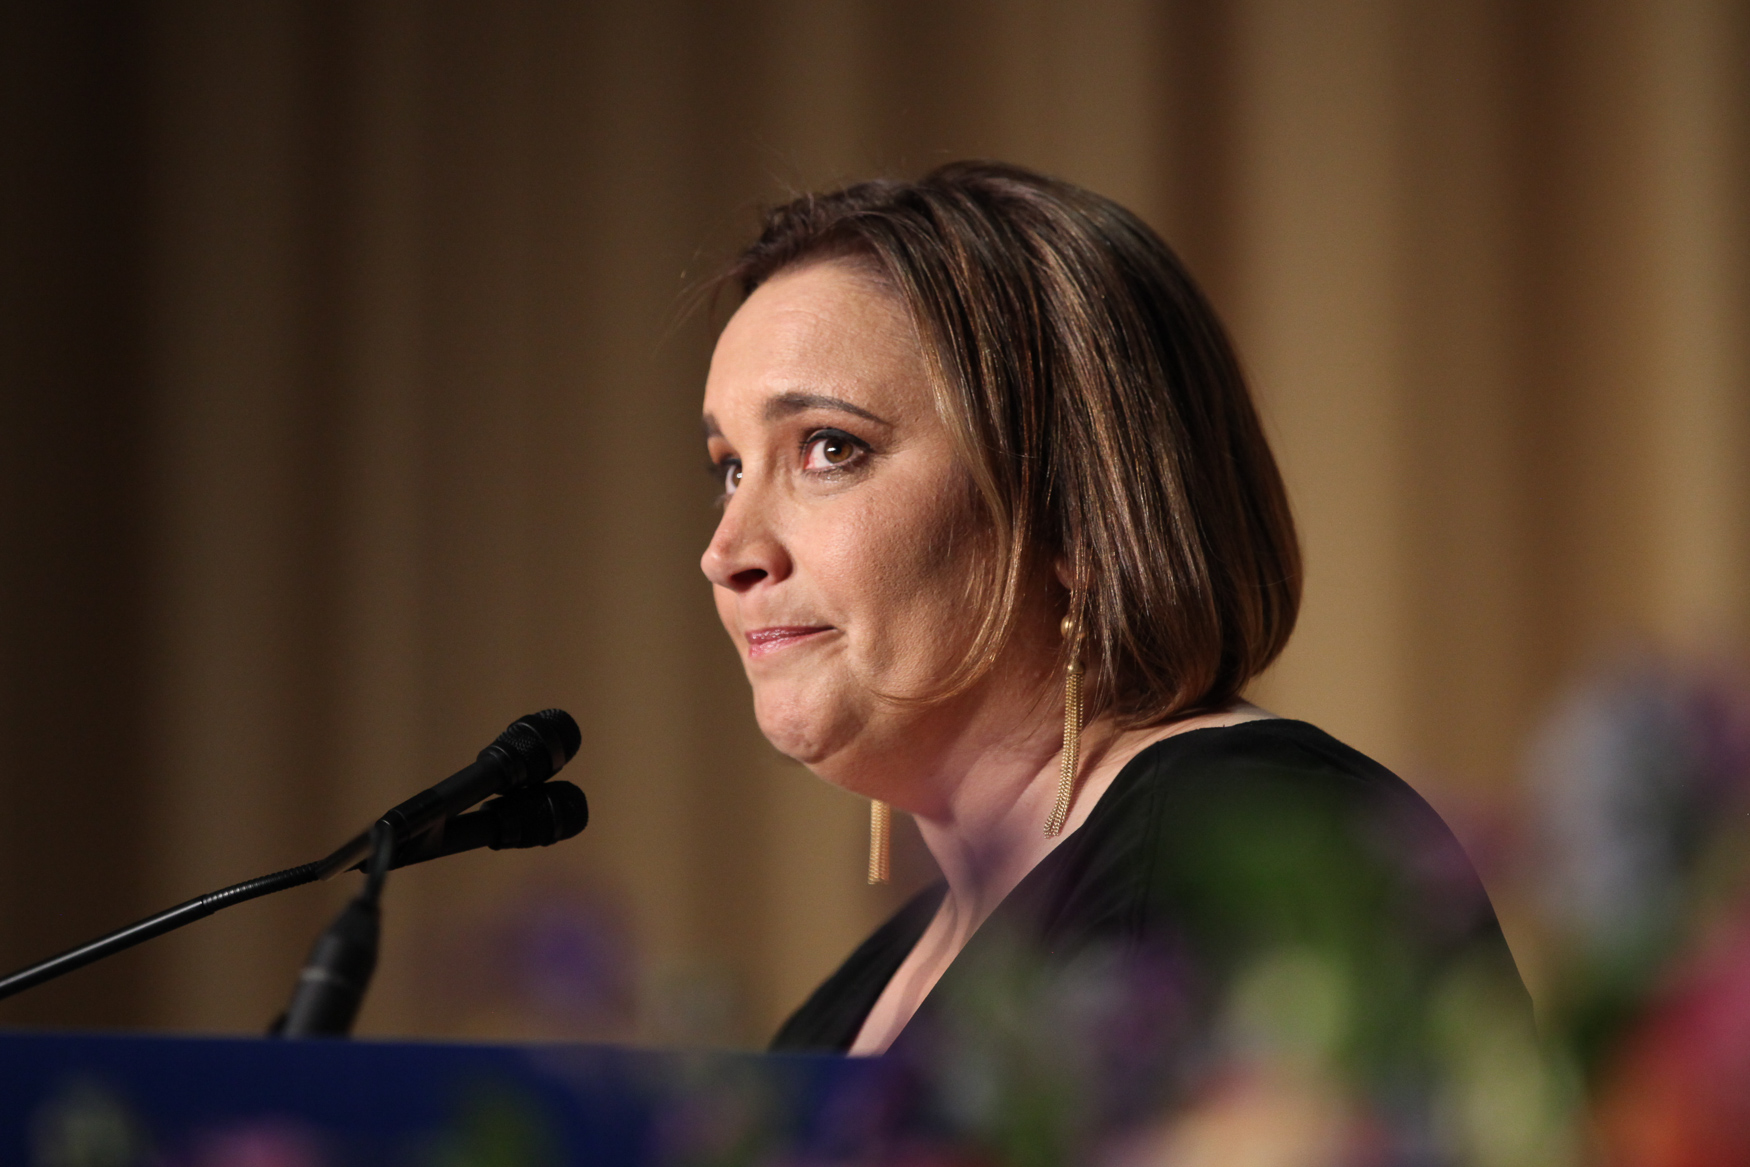 Margaret Talev, president of the White House Correspondents' Association, tears up during an emotional speech about her parents. (Amanda Andrade-Rhoades/DCRefined)